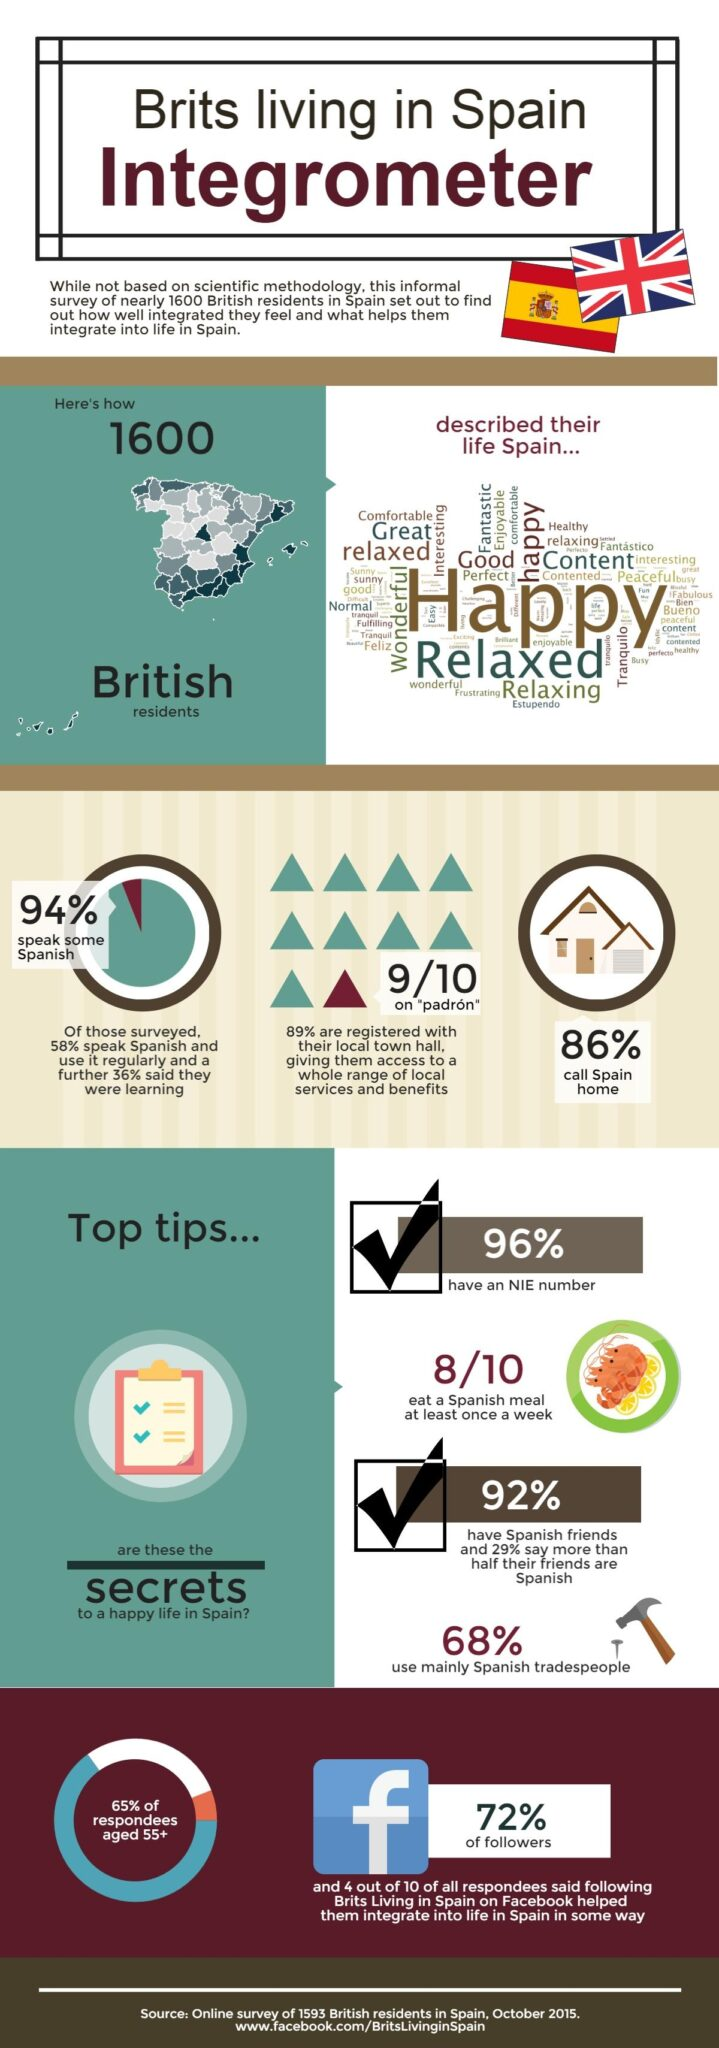 Brits living in Spain integrometer infographic